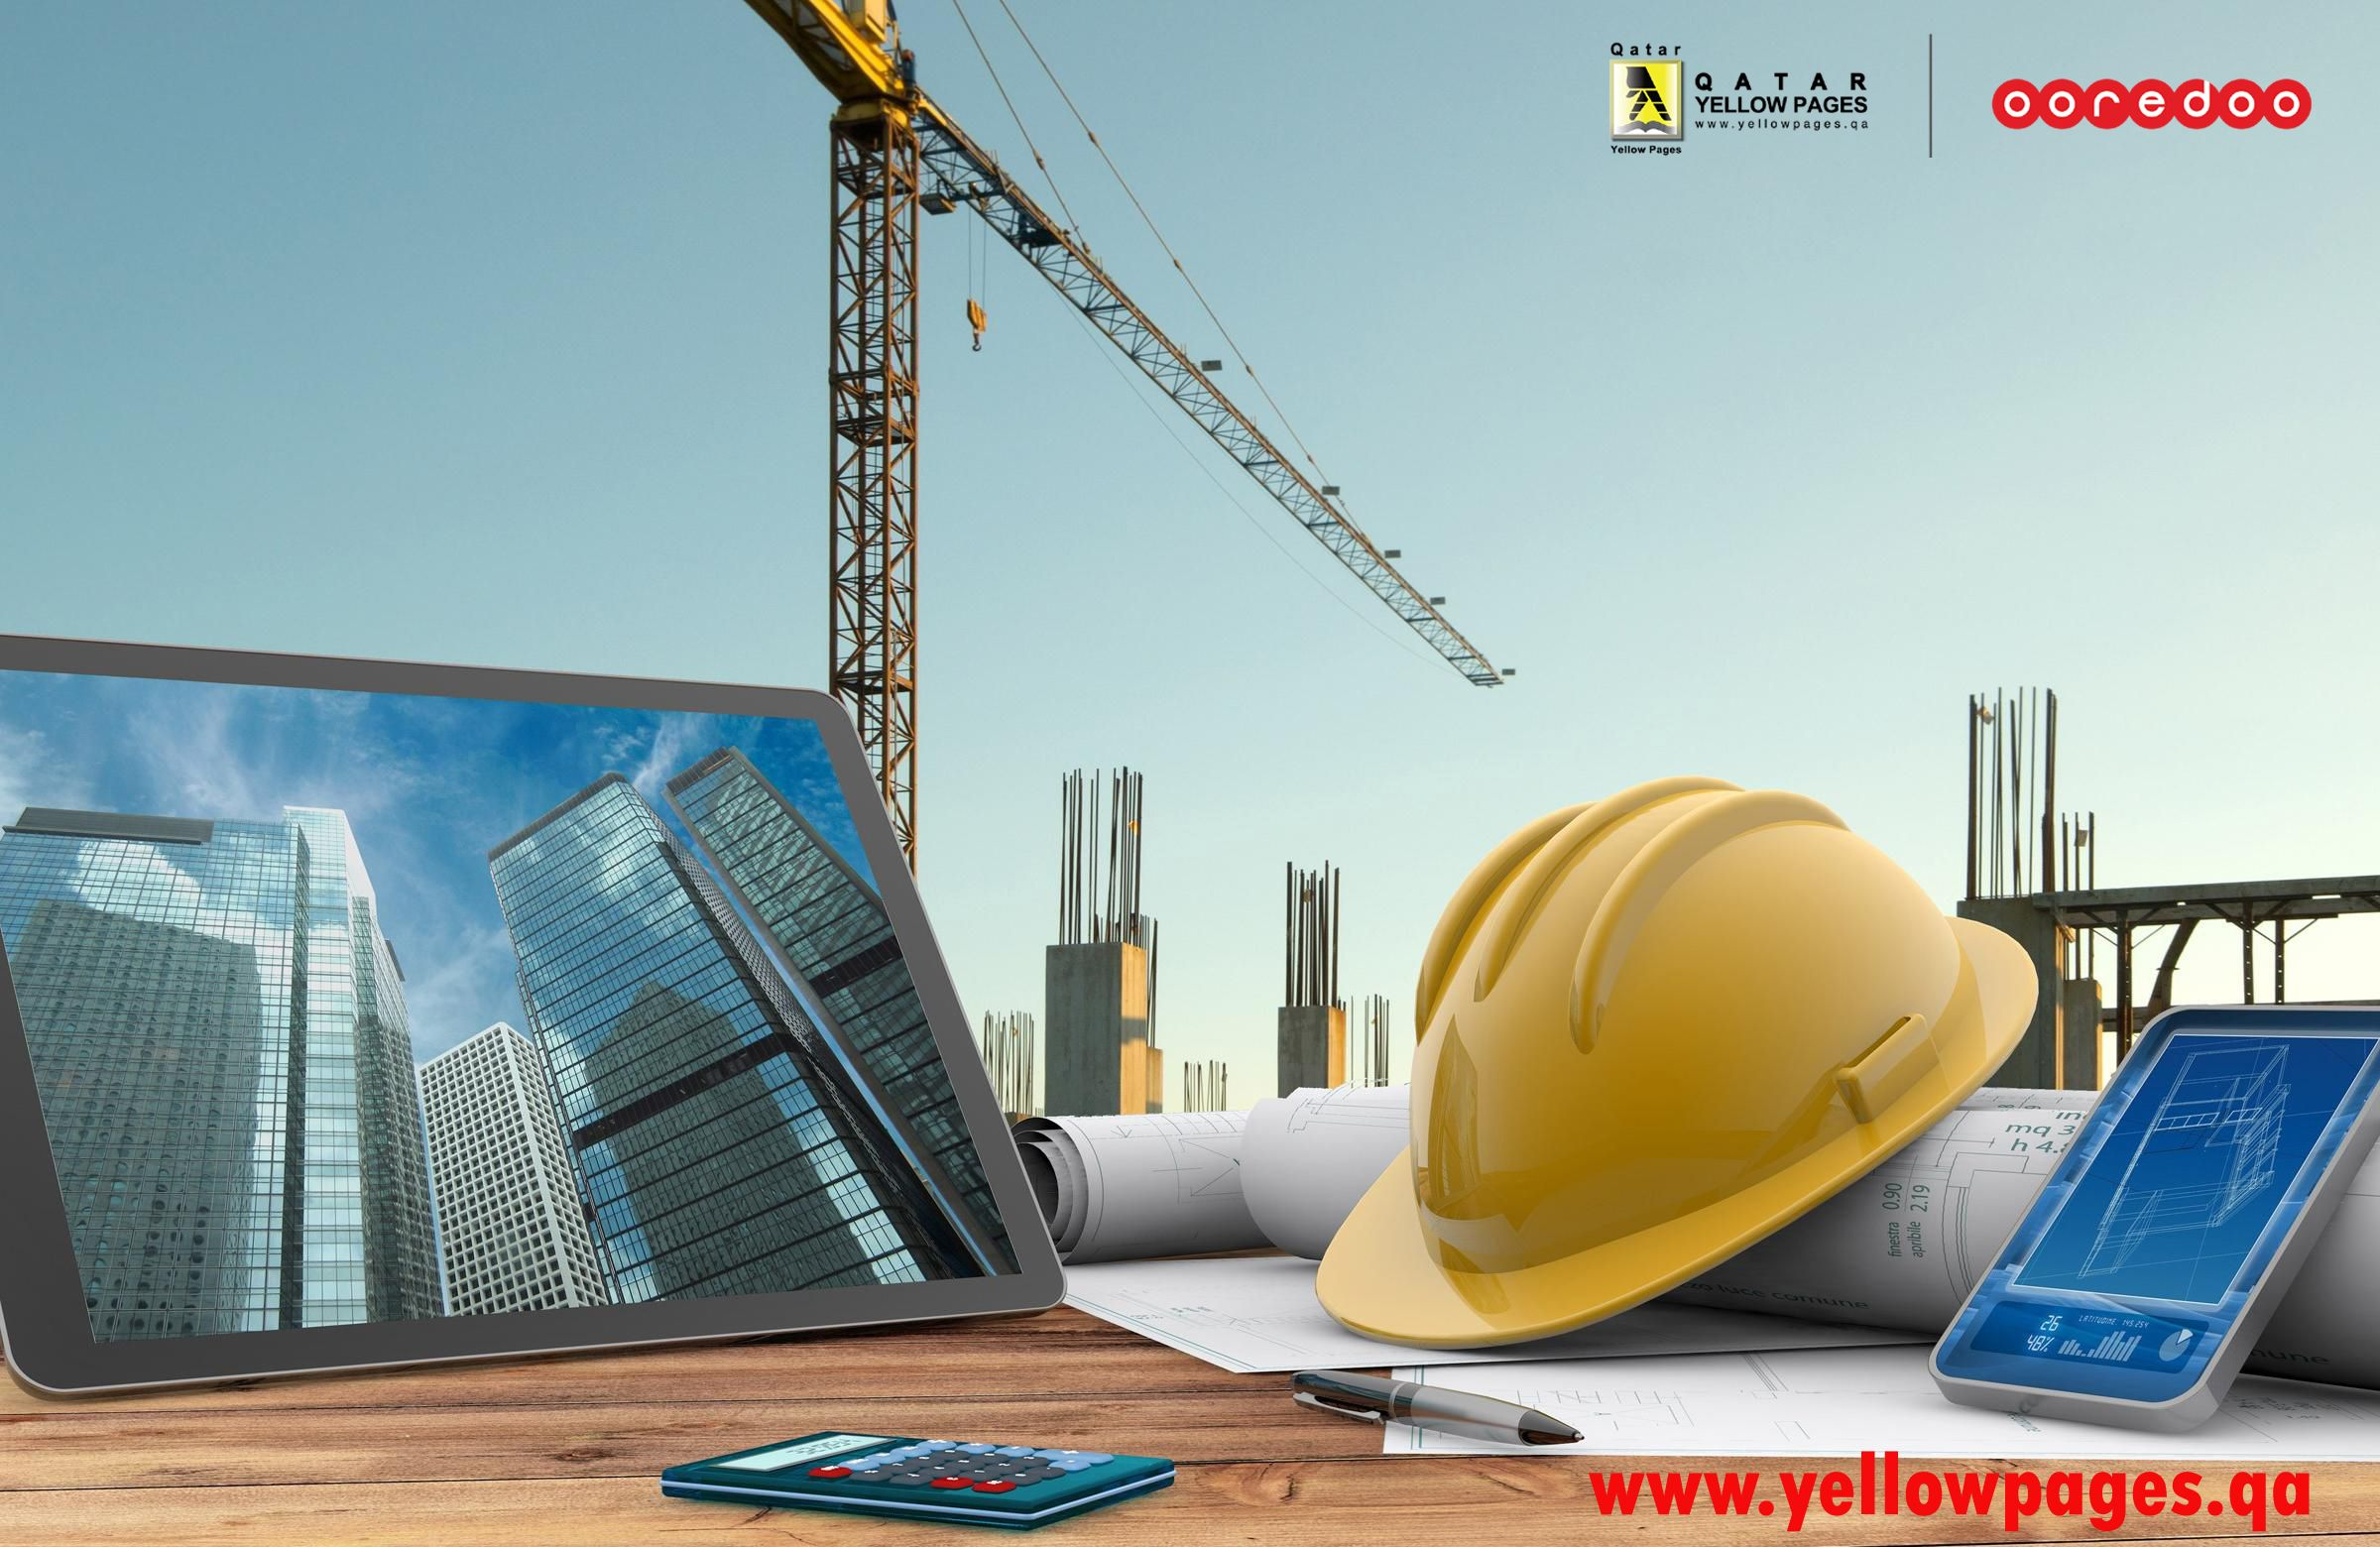 Search and achieve the best Construction Companies in Qatar